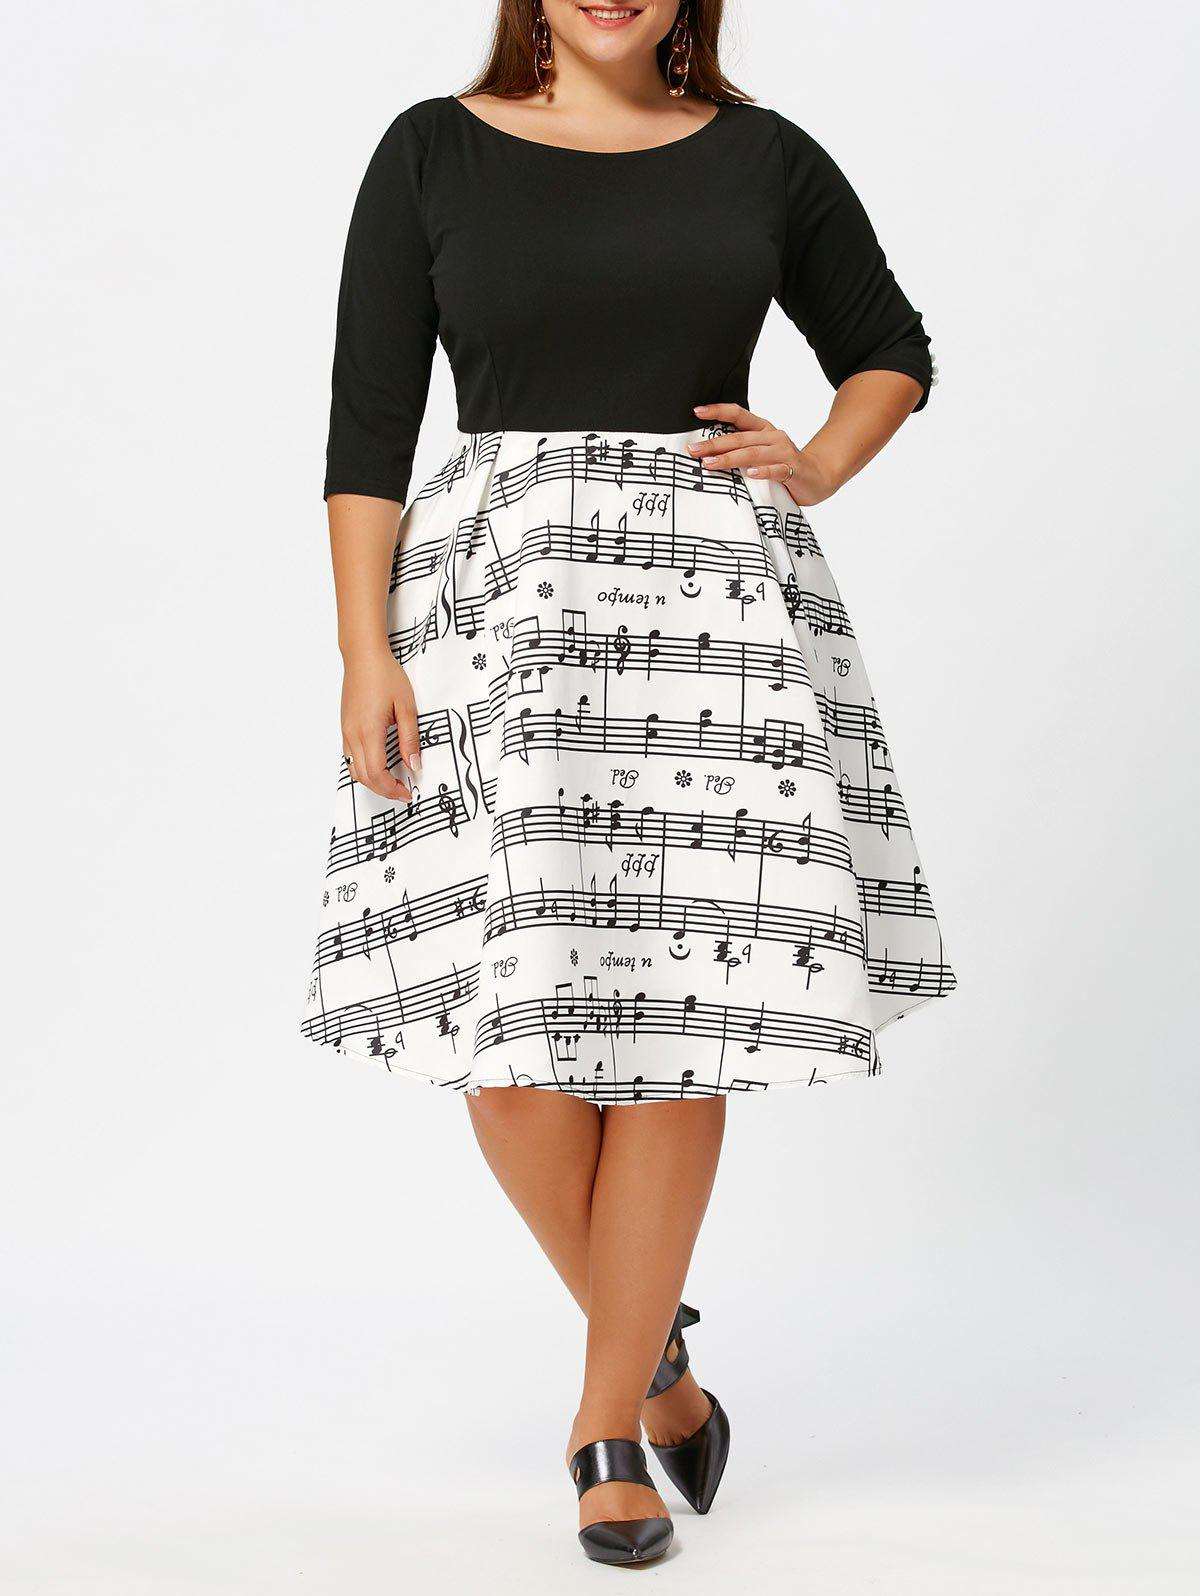 Musical Notes Print Plus Size Vintage DressWOMEN<br><br>Size: 4XL; Color: WHITE AND BLACK; Style: Casual; Material: Polyester,Spandex; Silhouette: A-Line; Dresses Length: Knee-Length; Neckline: Round Collar; Sleeve Length: 3/4 Length Sleeves; Waist: Empire; Embellishment: Panel; Pattern Type: Others; Elasticity: Elastic; With Belt: No; Season: Fall,Spring; Weight: 0.5500kg; Package Contents: 1 x Dress;